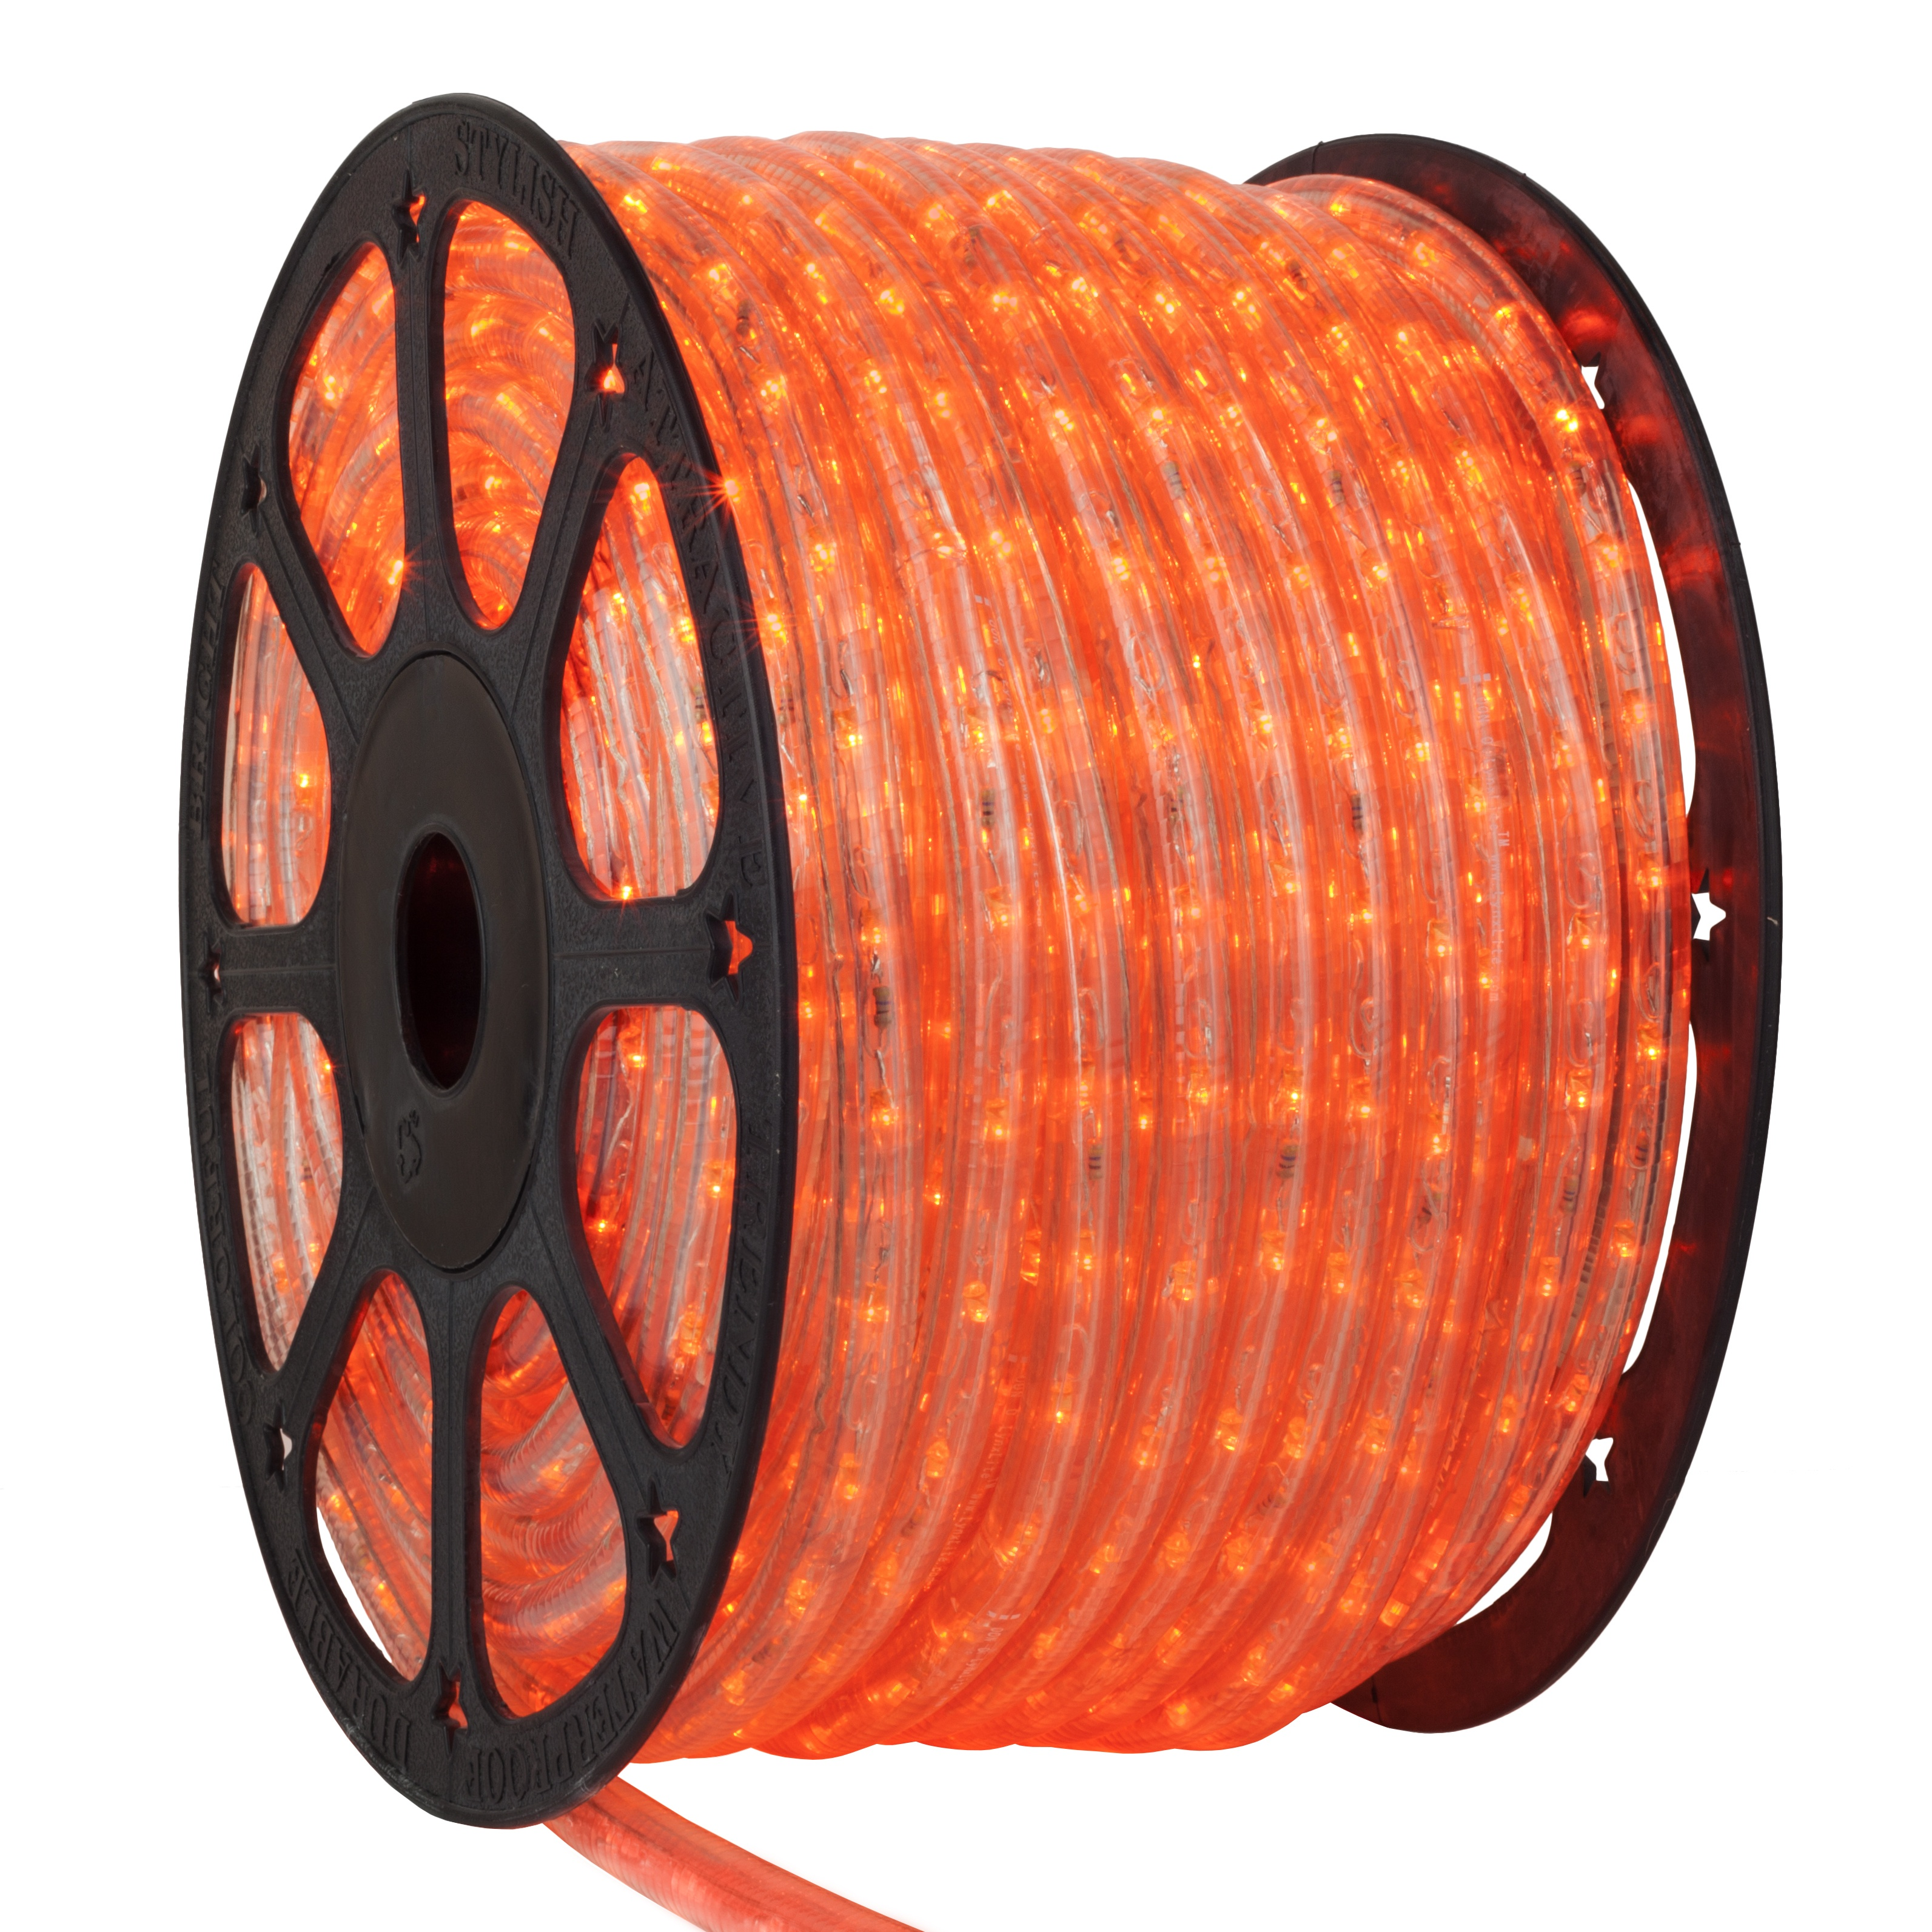 LED Rope Lights   150  Orange LED Rope Light Commercial Spool  120 Volt. LED Rope Lights   150  Orange LED Rope Light Commercial Spool  120